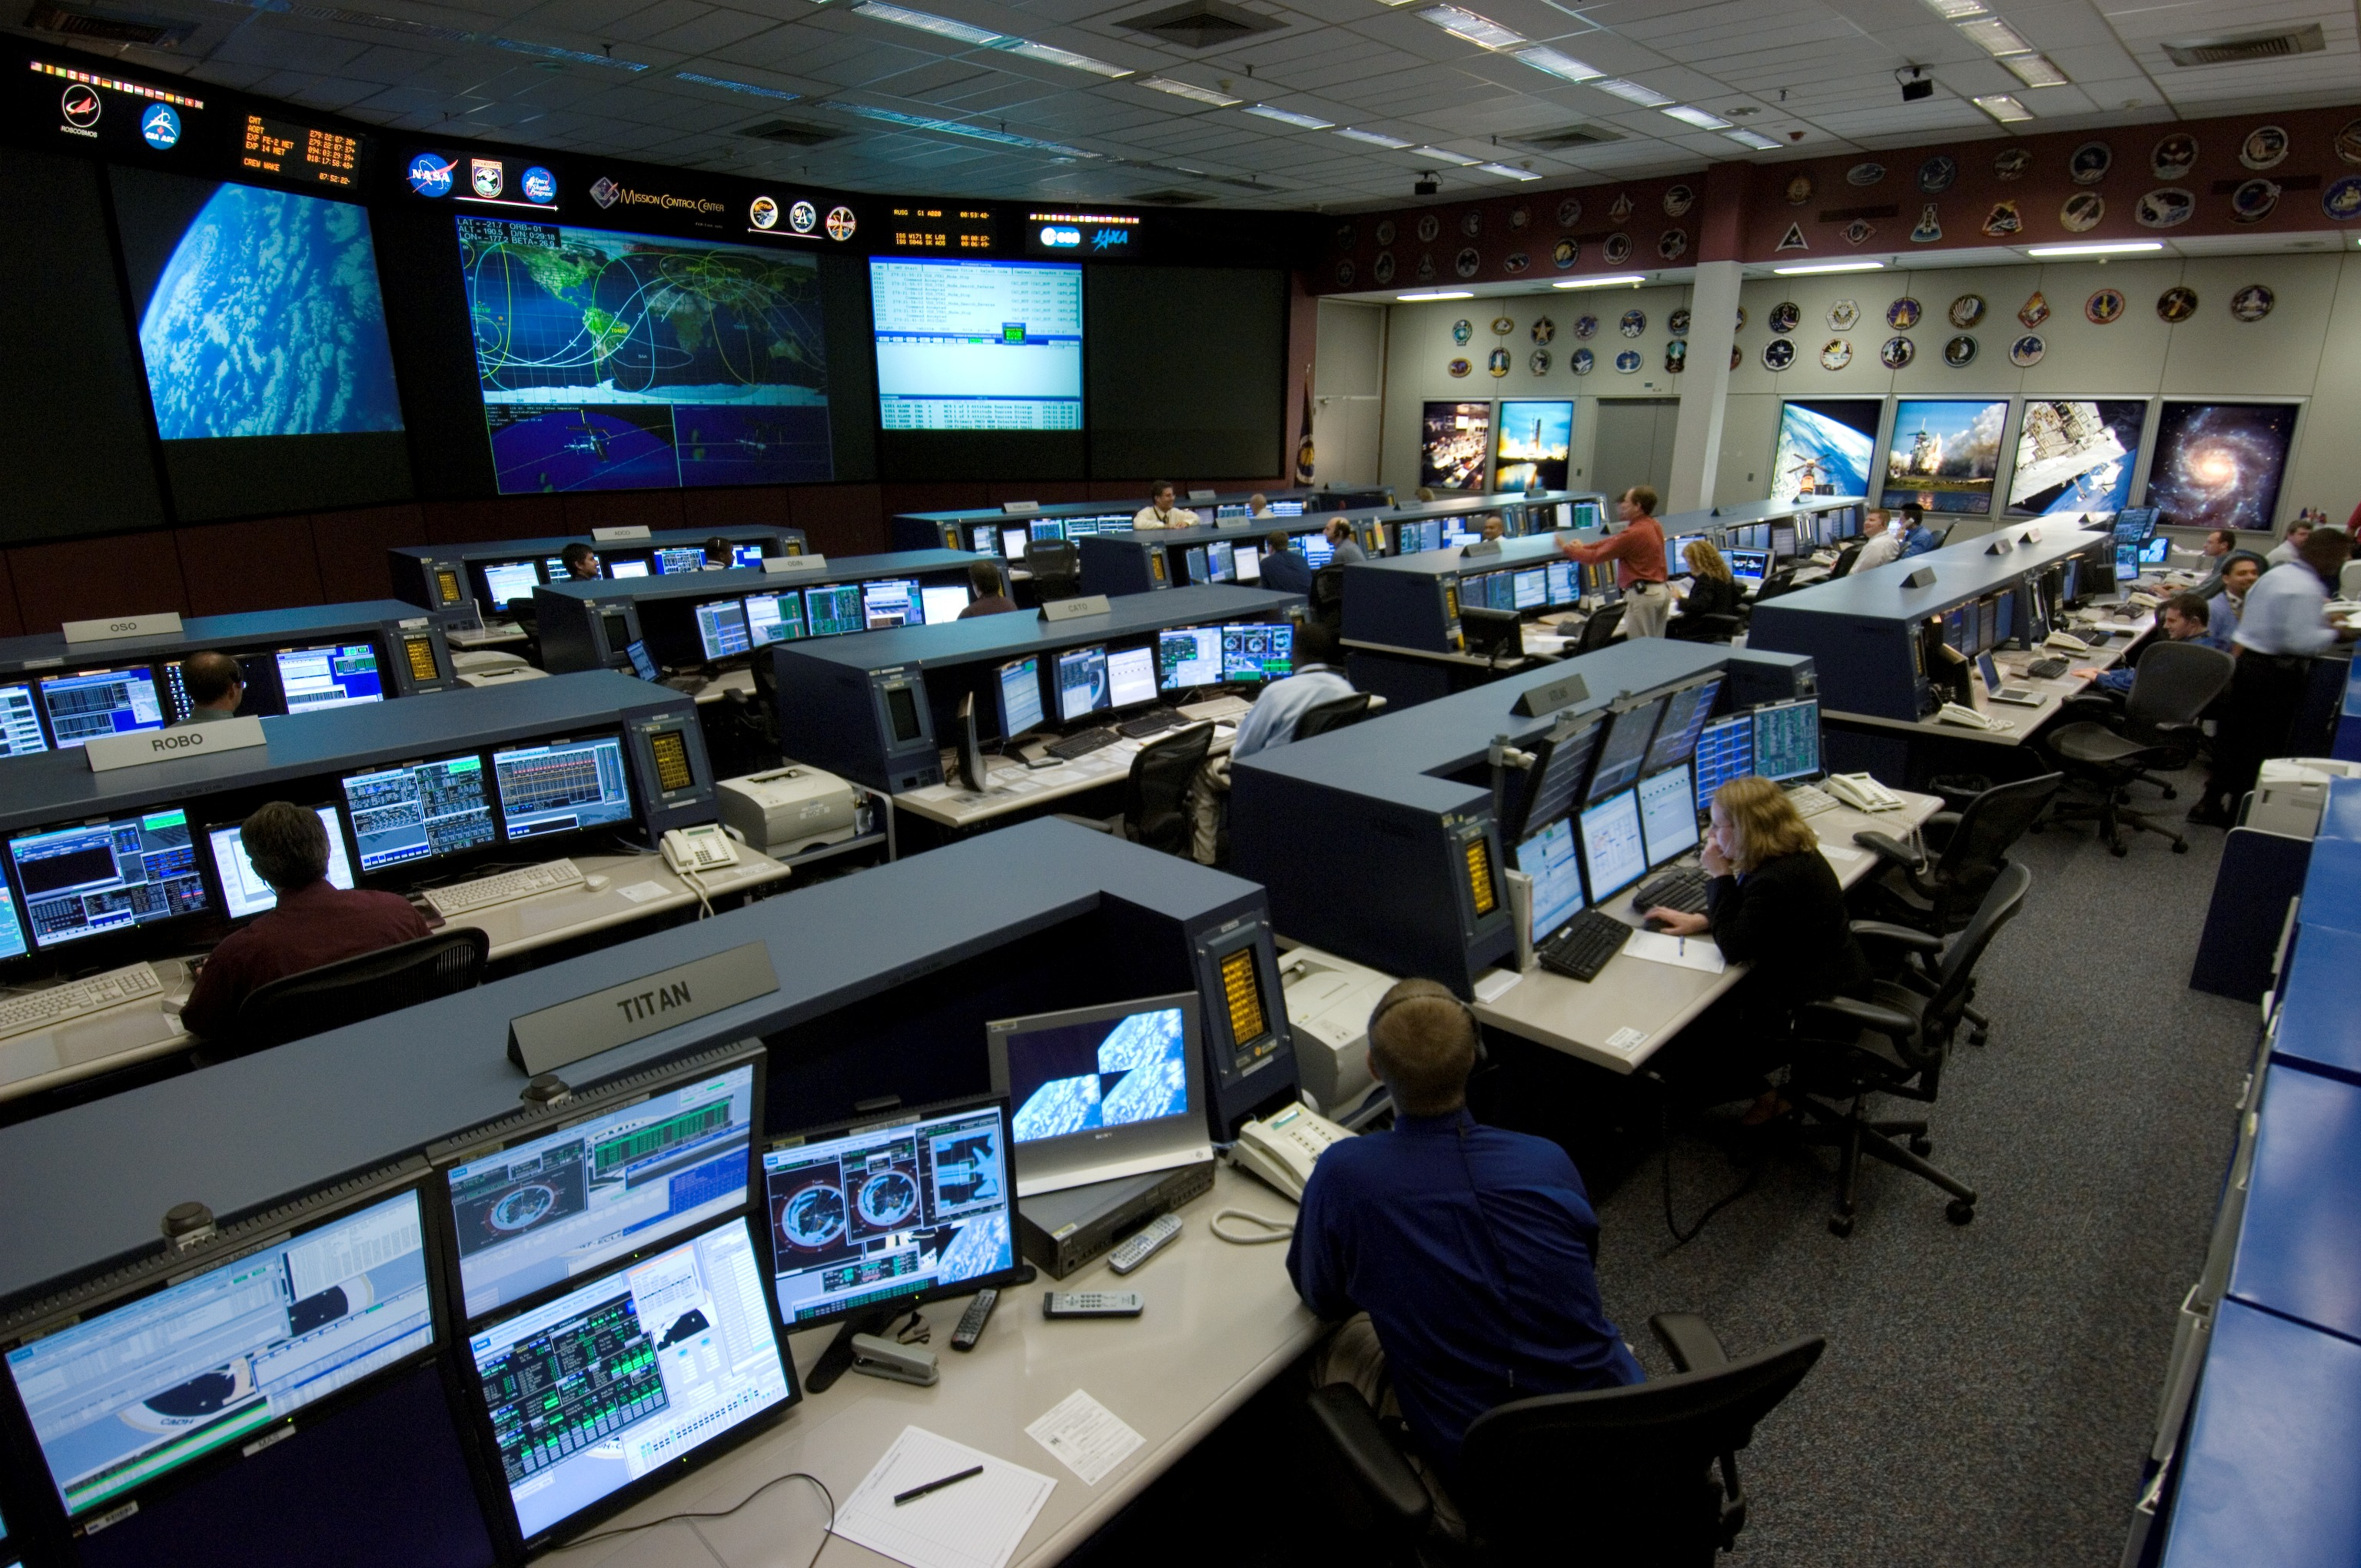 NASA - New Station Flight Control Room